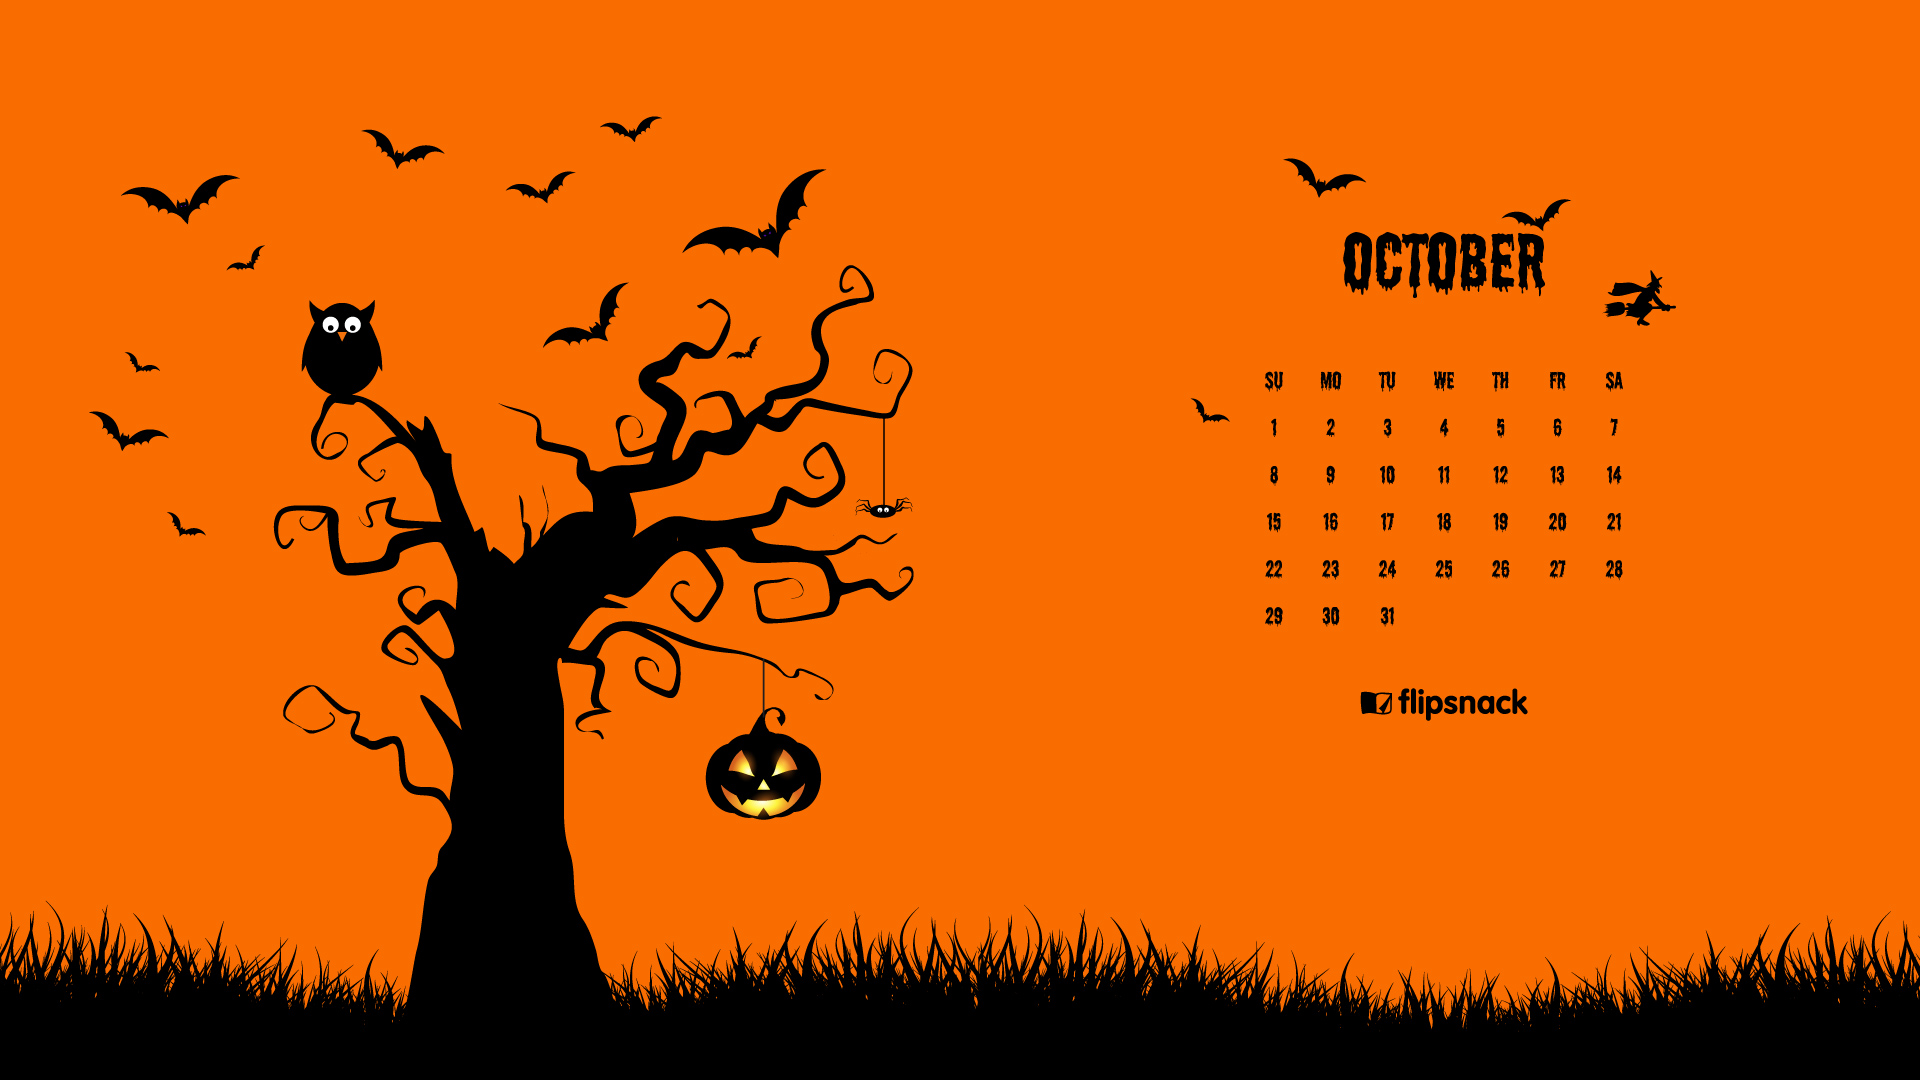 October Wallpaper for Calendar